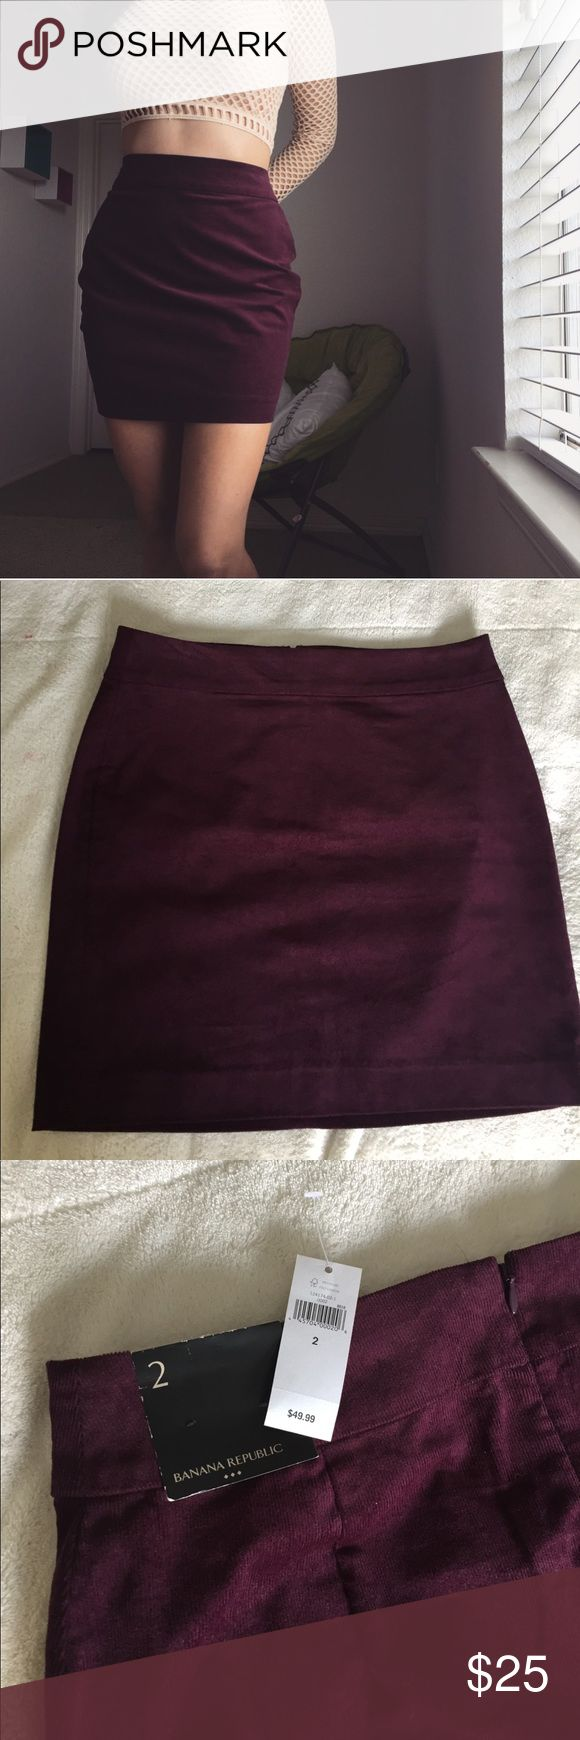 Banana Republic purple corduroy pencil skirt Perfect condition, new with tags. Size 2. Shown pinned on the model. Waist: 30 inches (shown on 25 inch waist) Length: 17.5 inches Banana Republic Skirts Mini